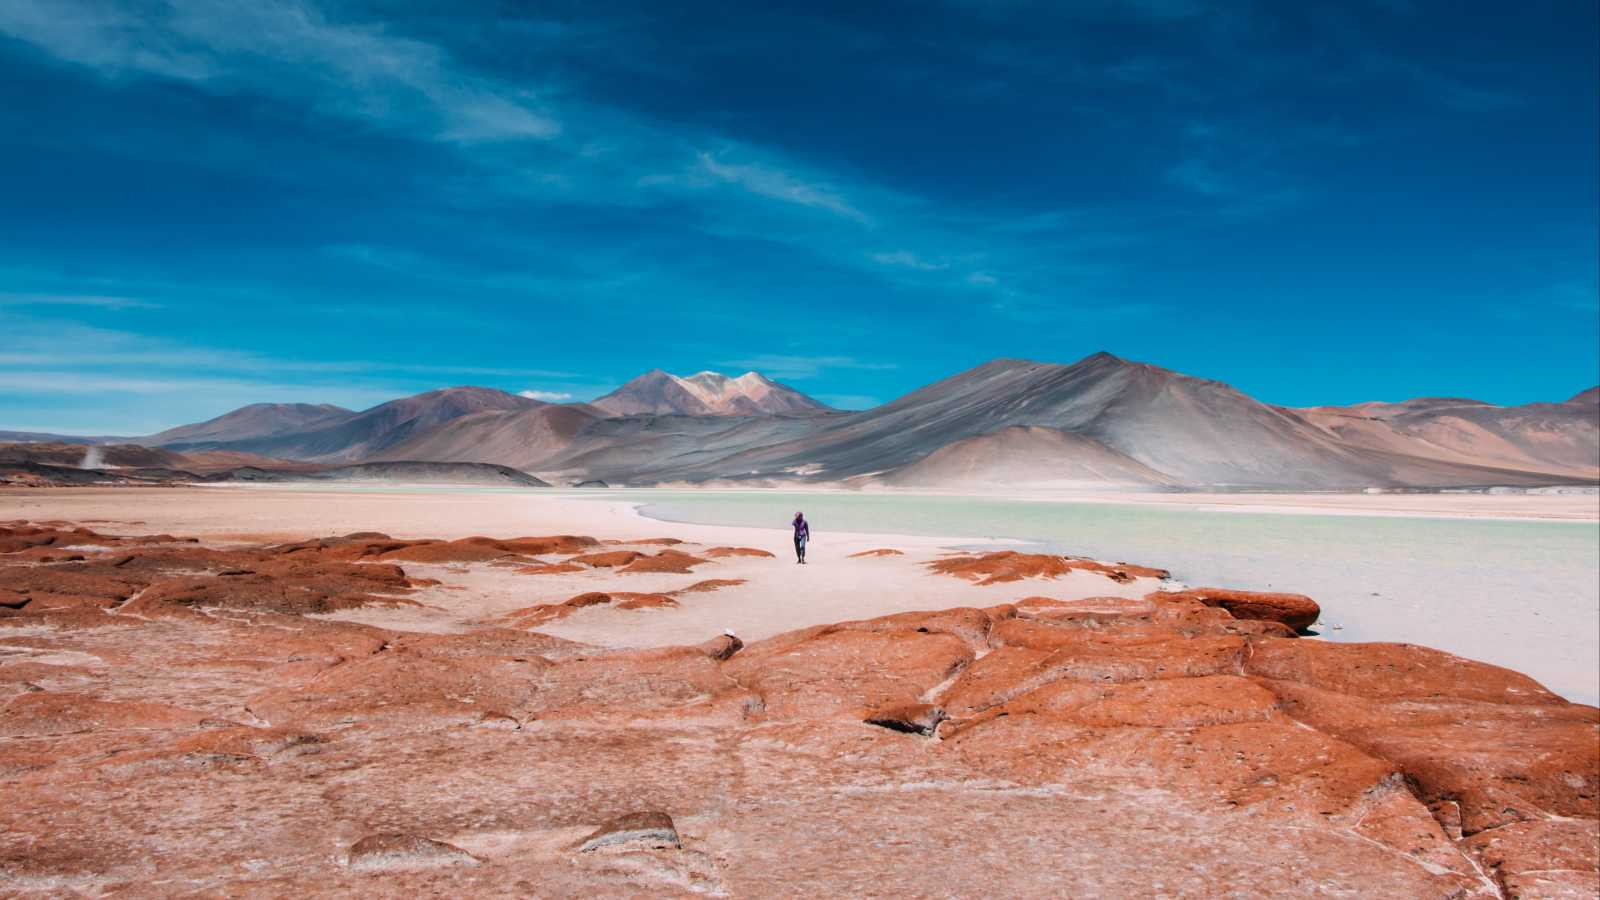 Discover the salt flats of the Atacama Desert on a Chile Tour